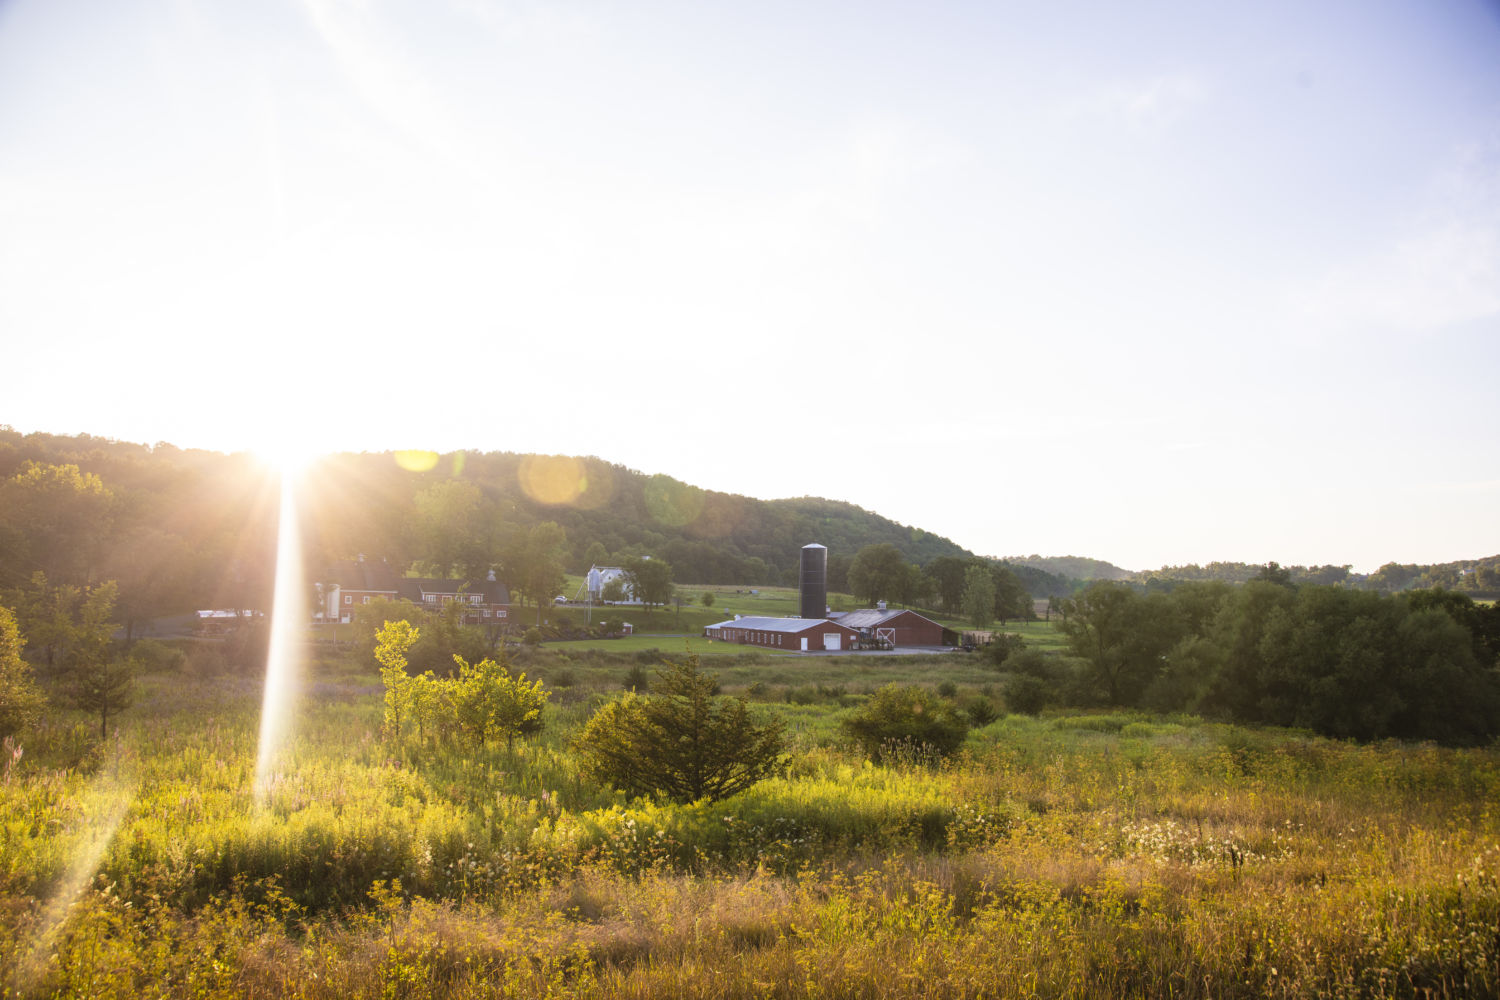 Fields surrounding WhistlePig American whiskey distillery